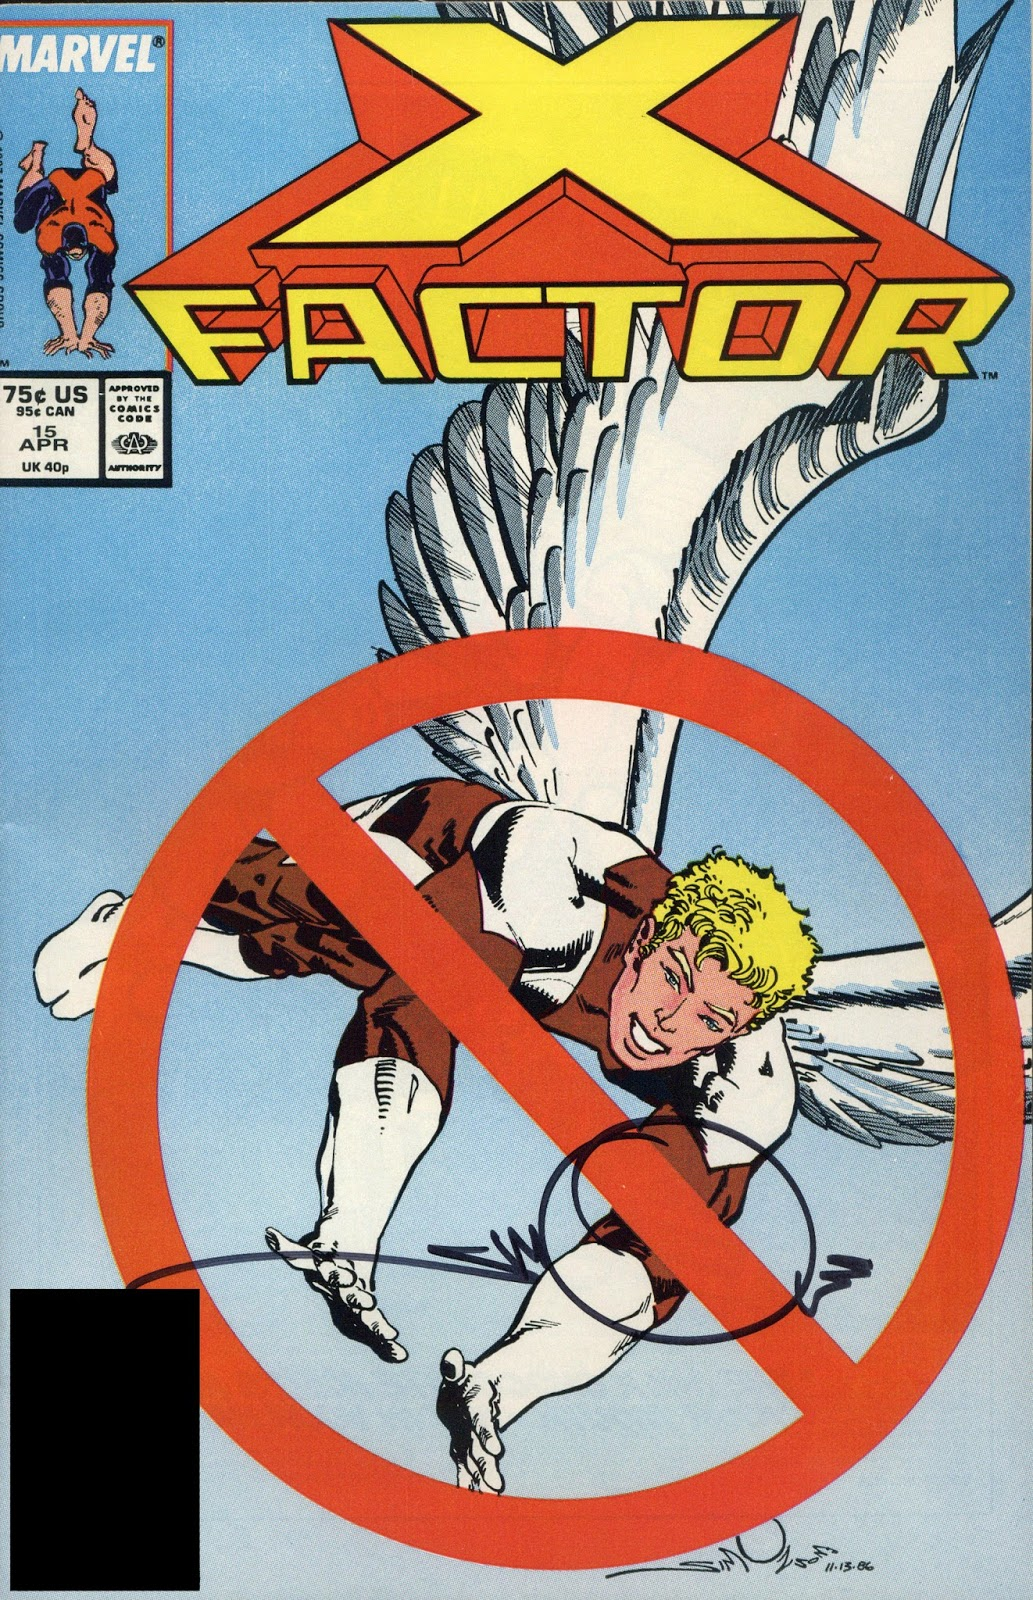 APOCALYPSE Reading Order - Part 1: RISE OF THE FIRST MUTANT (1986